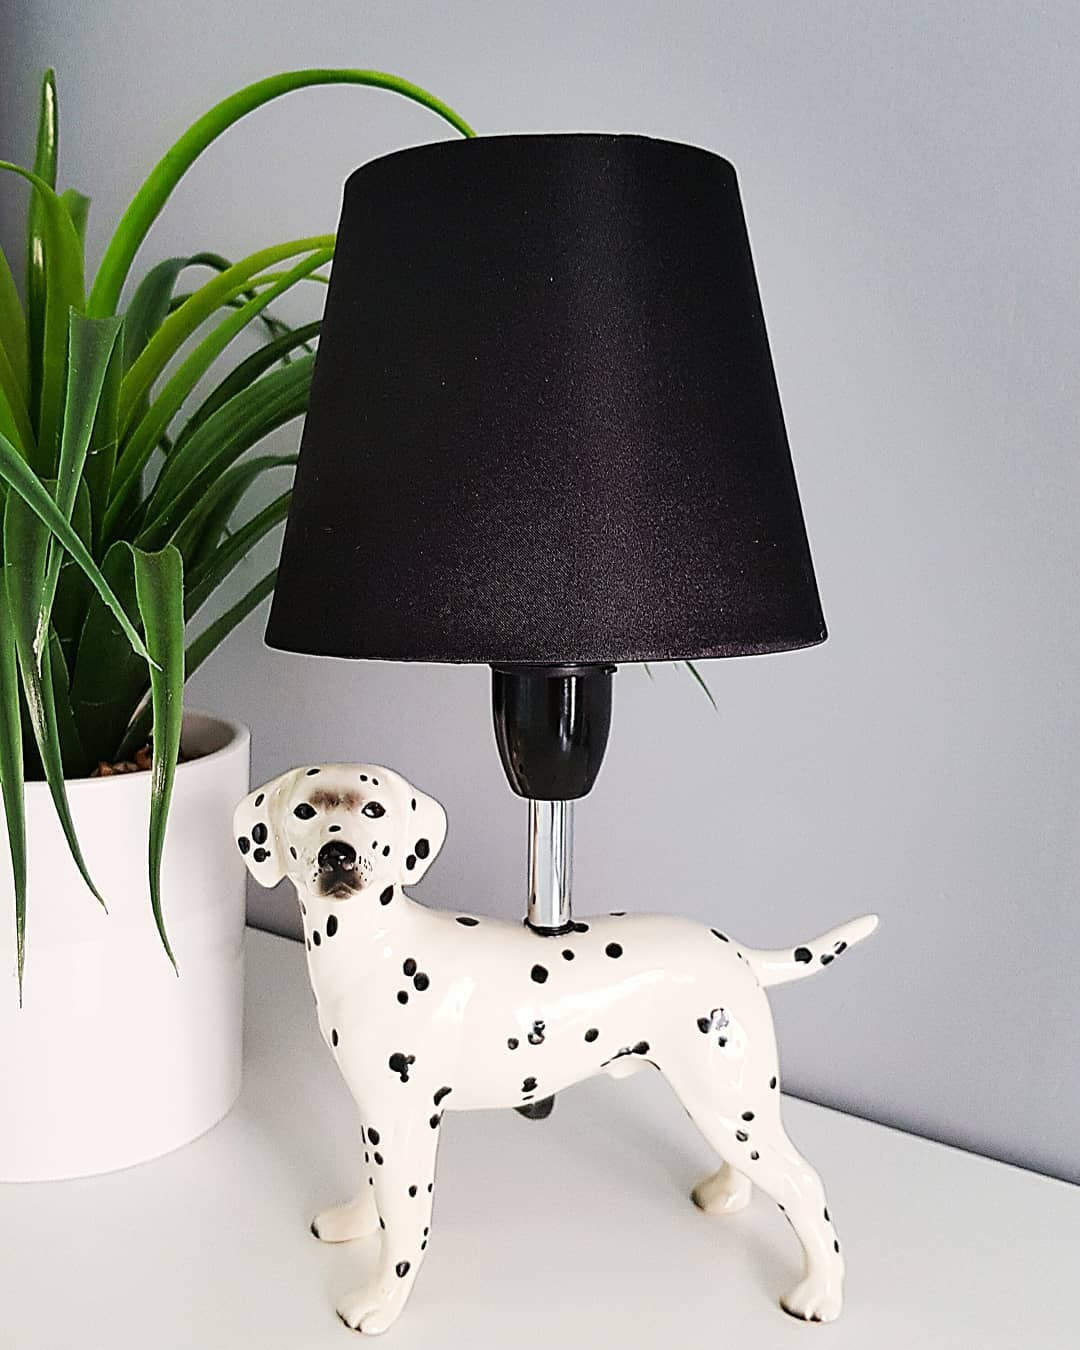 Dalmatian Table Lamp.jpg